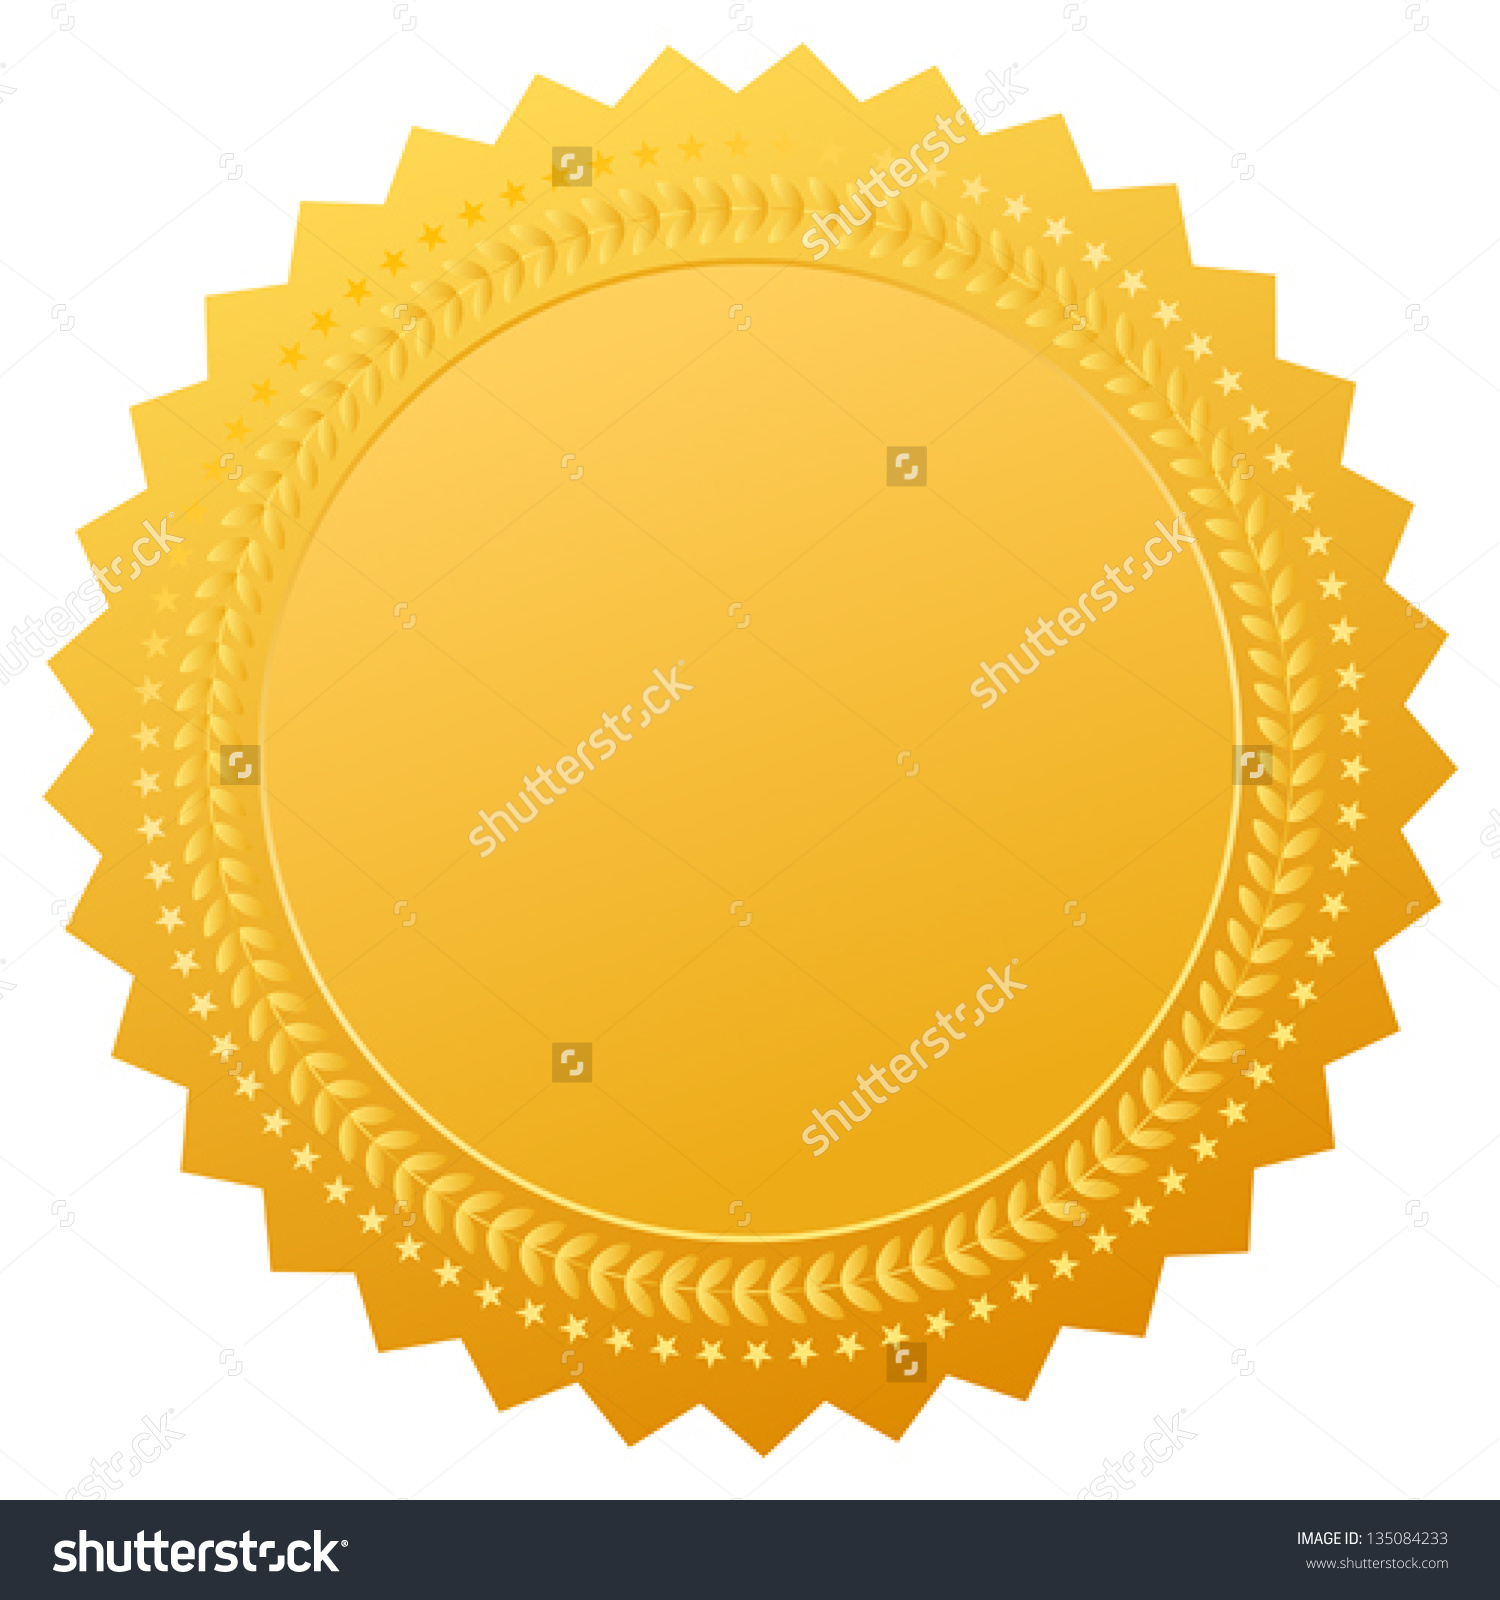 Blank Gold Seal Vector Clip Art Stock Vector 135084233.